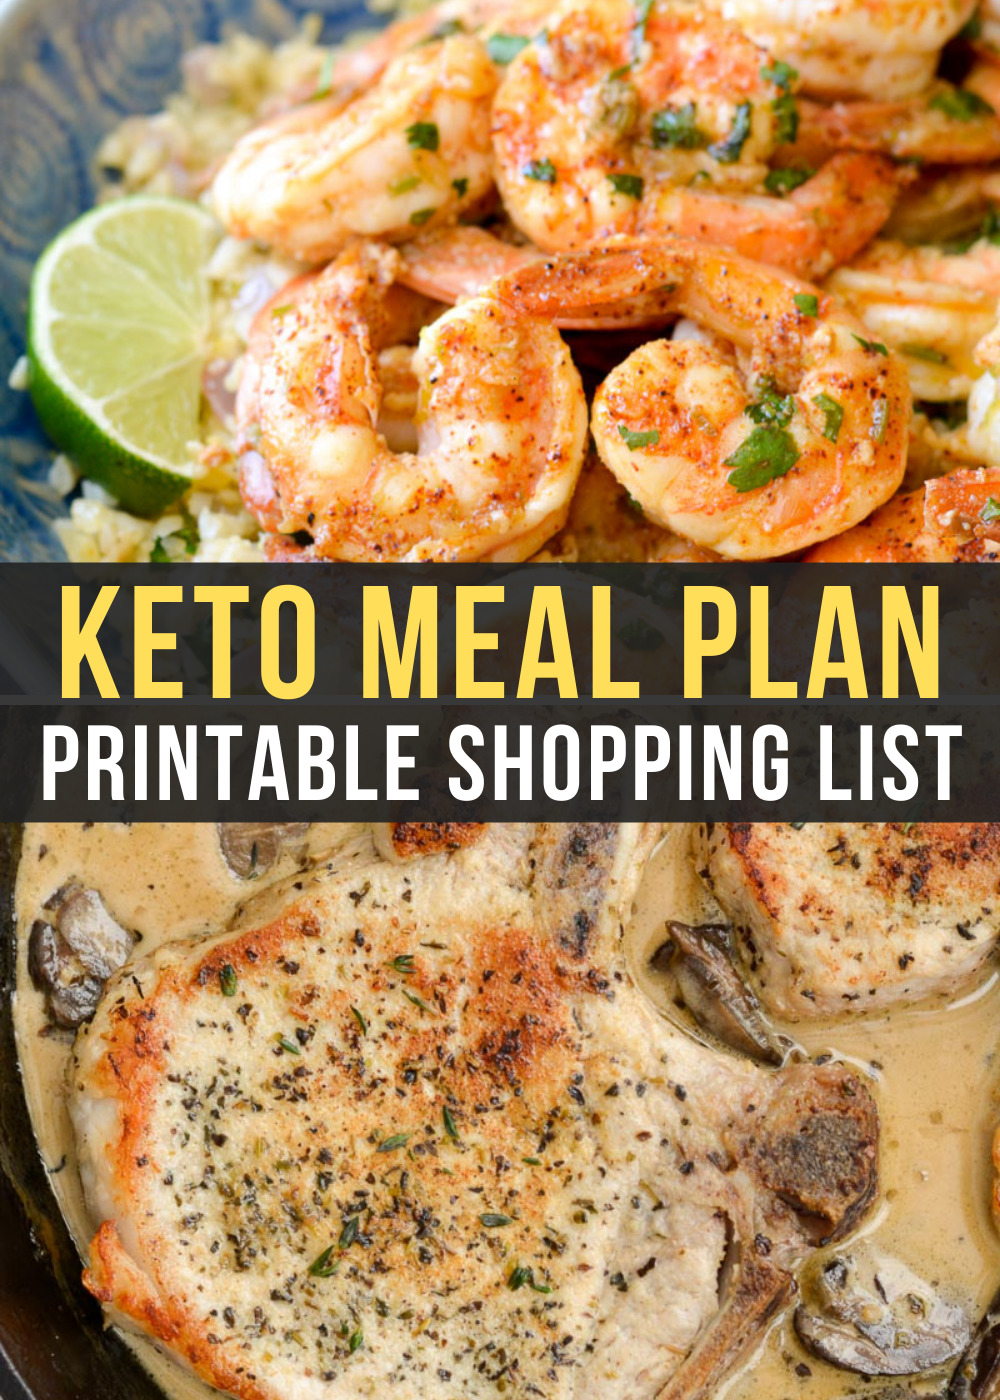 This week's Easy Keto Meal Plan includes Cilantro Lime Shrimp and Cauliflower Rice and Pork Chops with Mushroom Sauce!